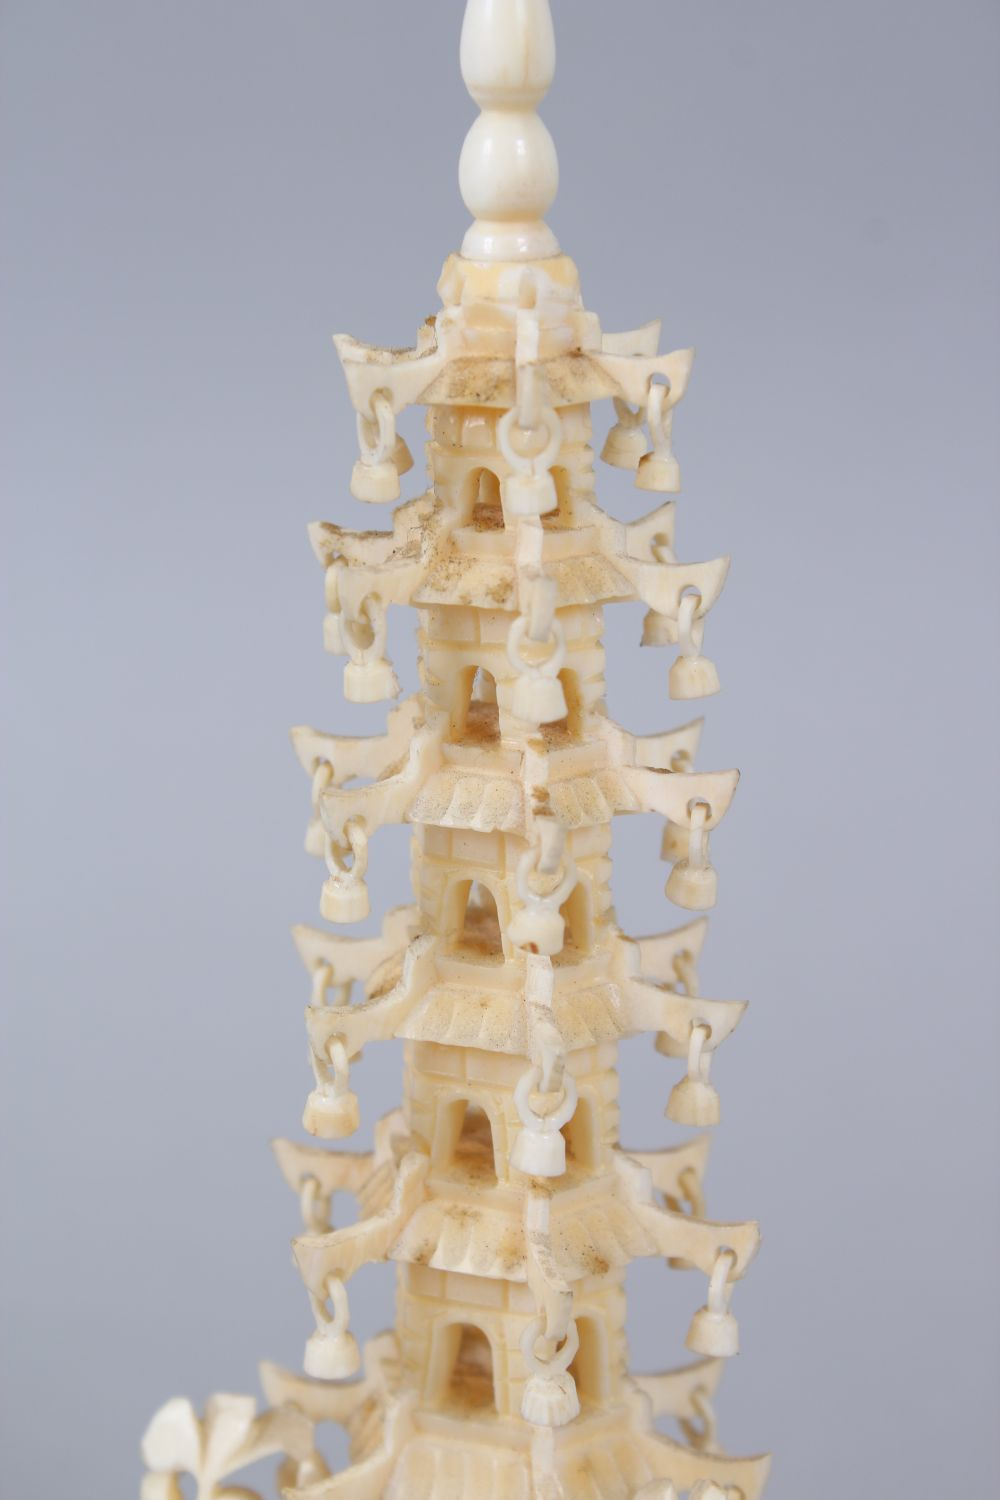 Lot 42 - A GOOD 19TH CENTURY CHINESE CARVBED IVORY PAGODA FIGURE, on its hardwood base, 20cm high overall x